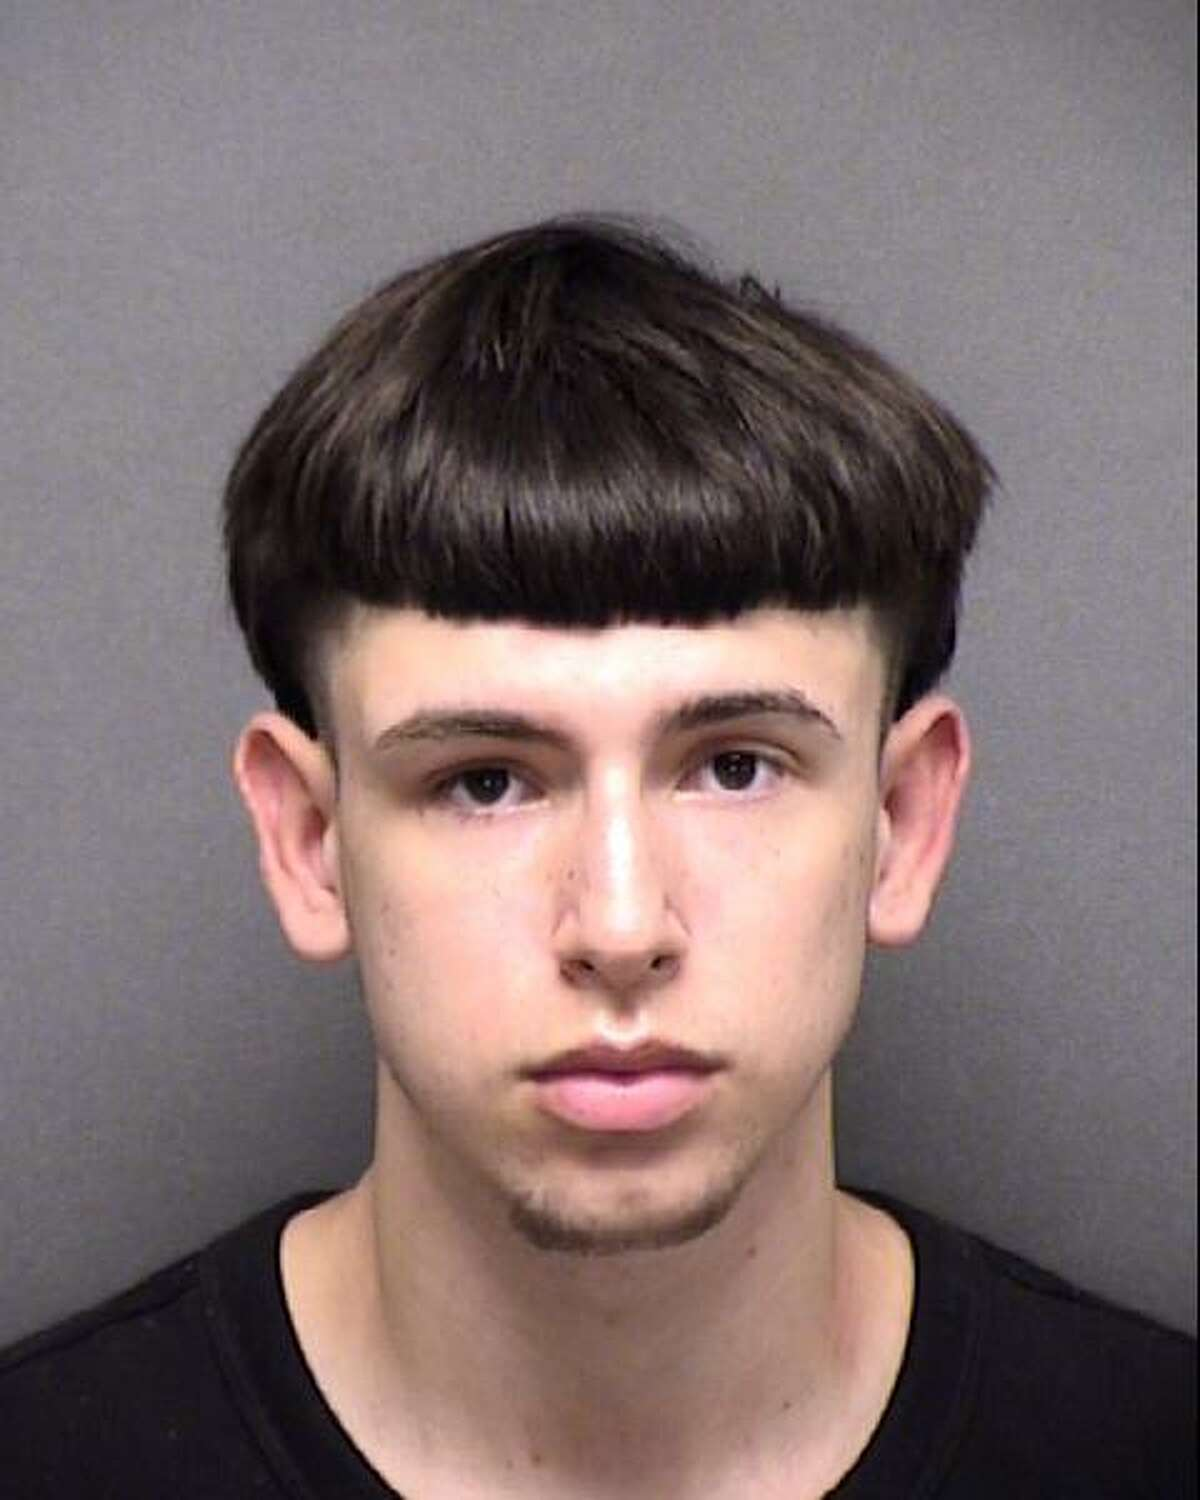 Aiden Villhaur, 18, is charged with trafficking of a child.